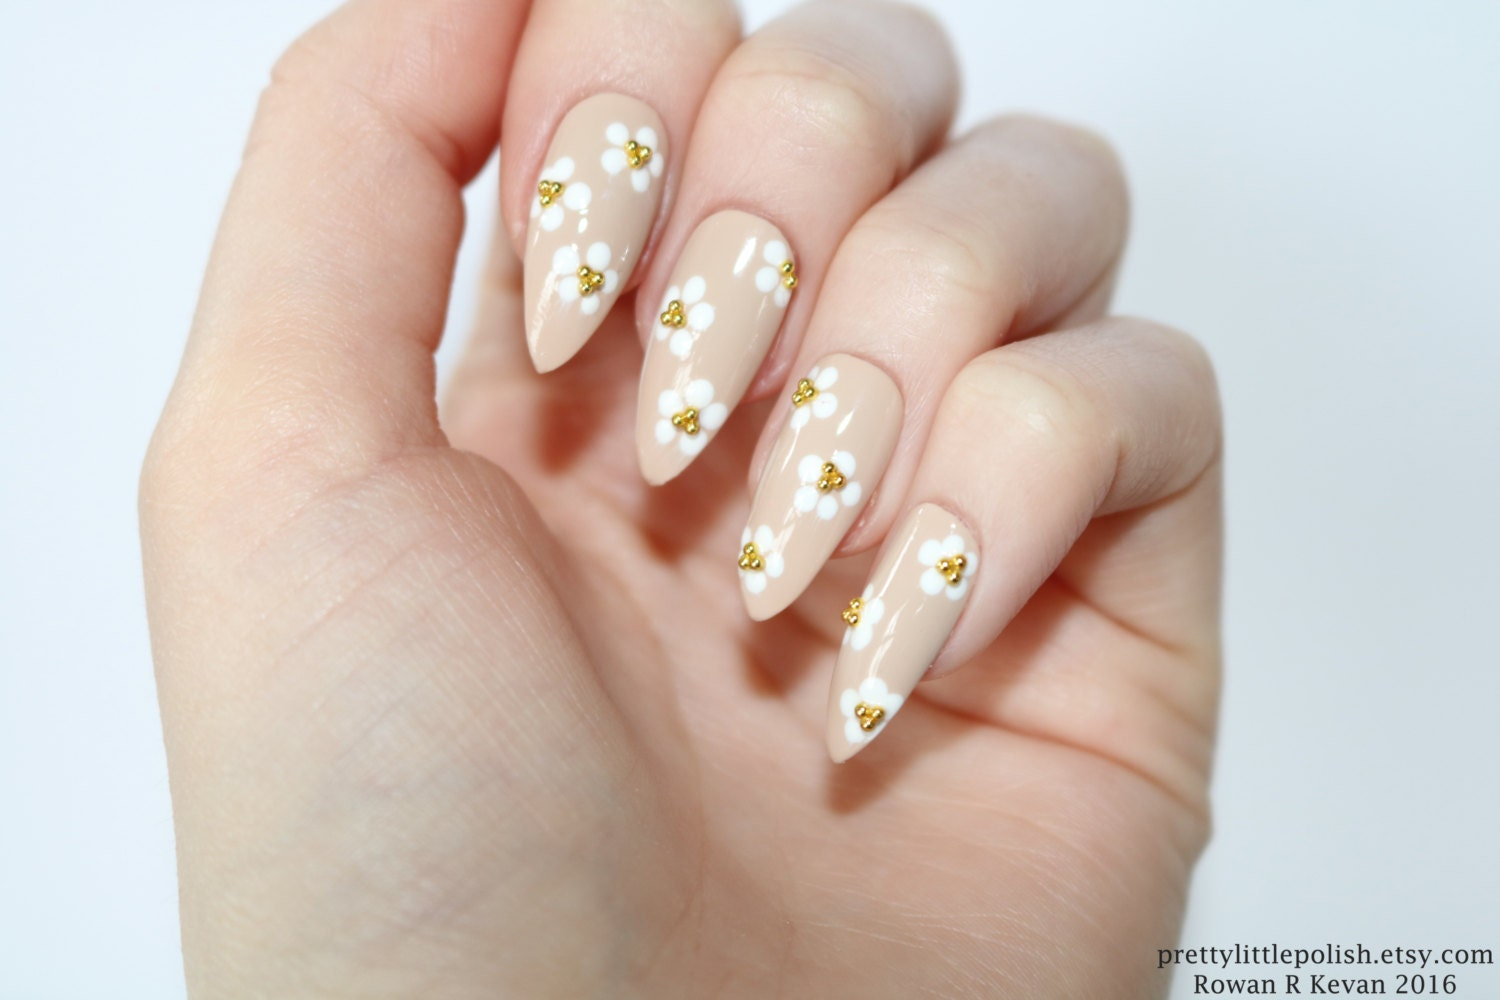 Floral stiletto nails Nude stiletto nails Nude nails